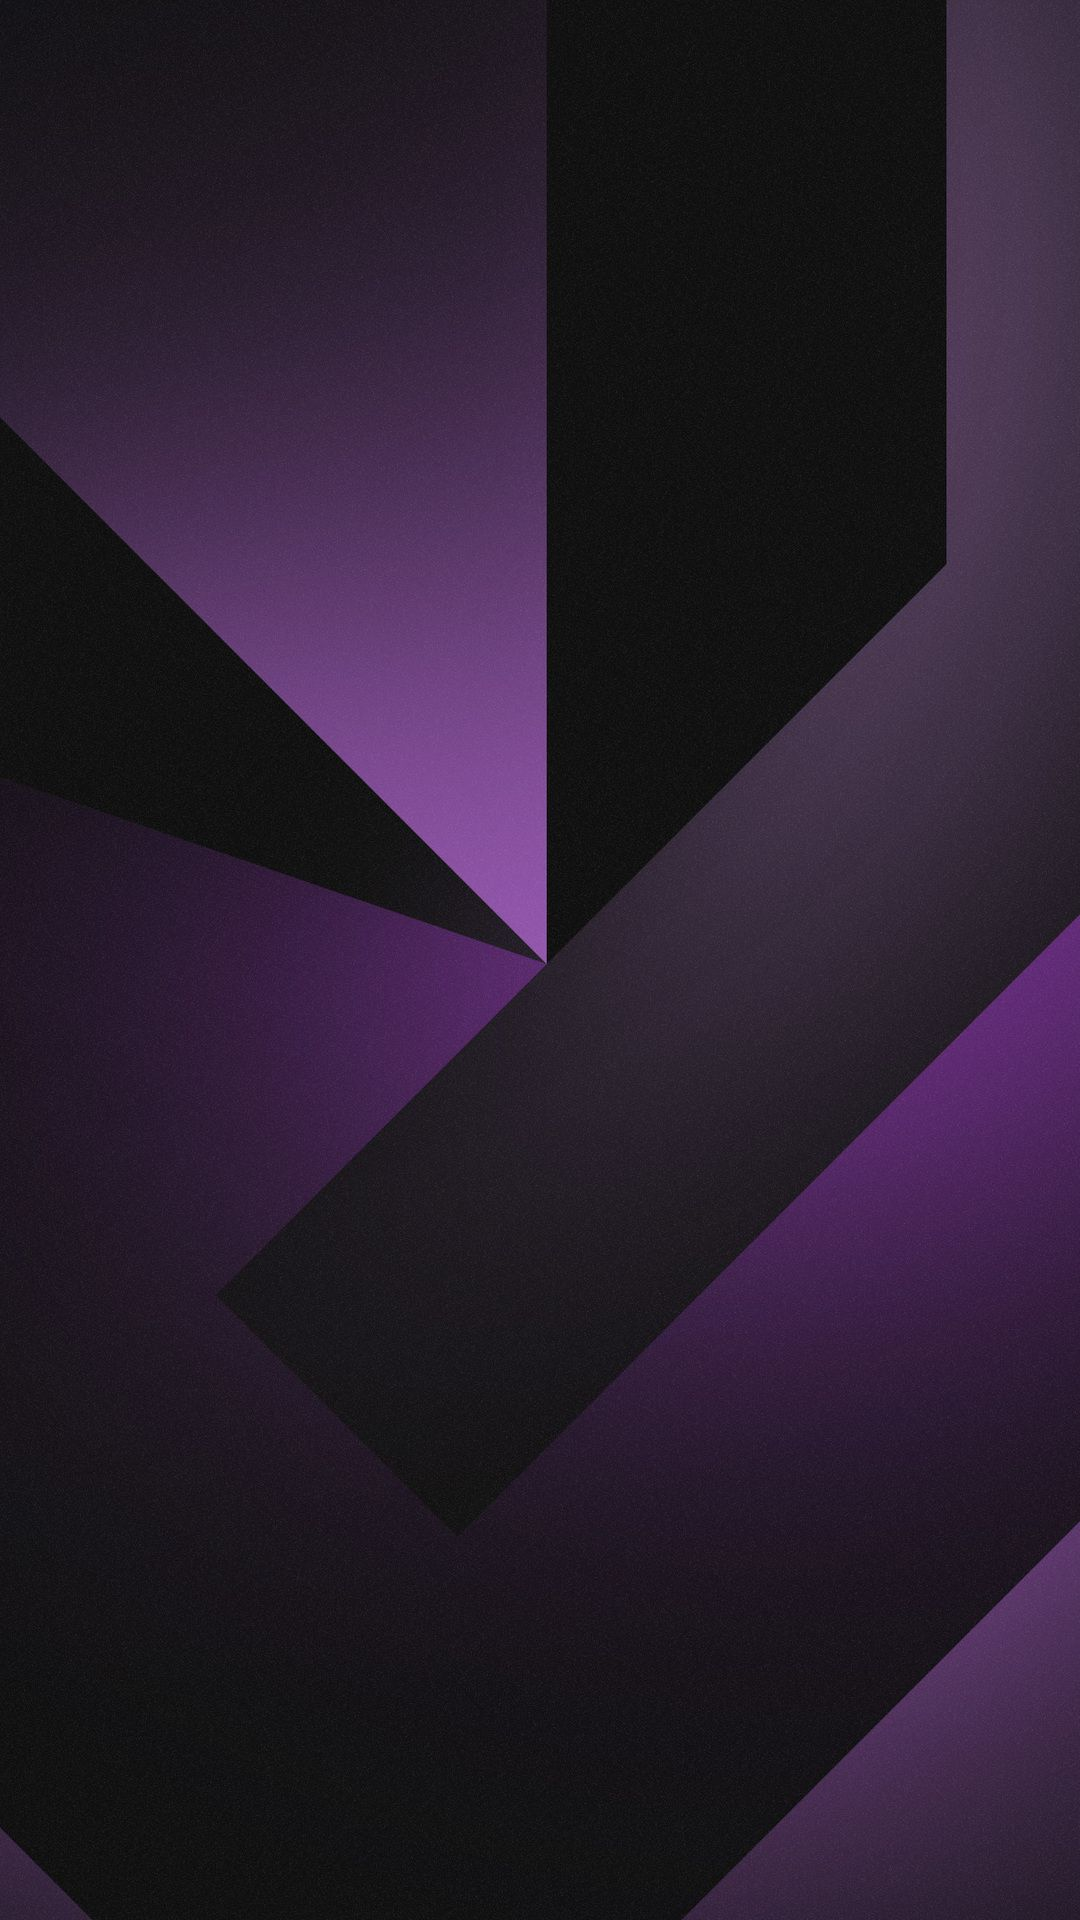 Abstract Dark Purple 4k In 1080x1920 Resolution Ekkor 2019